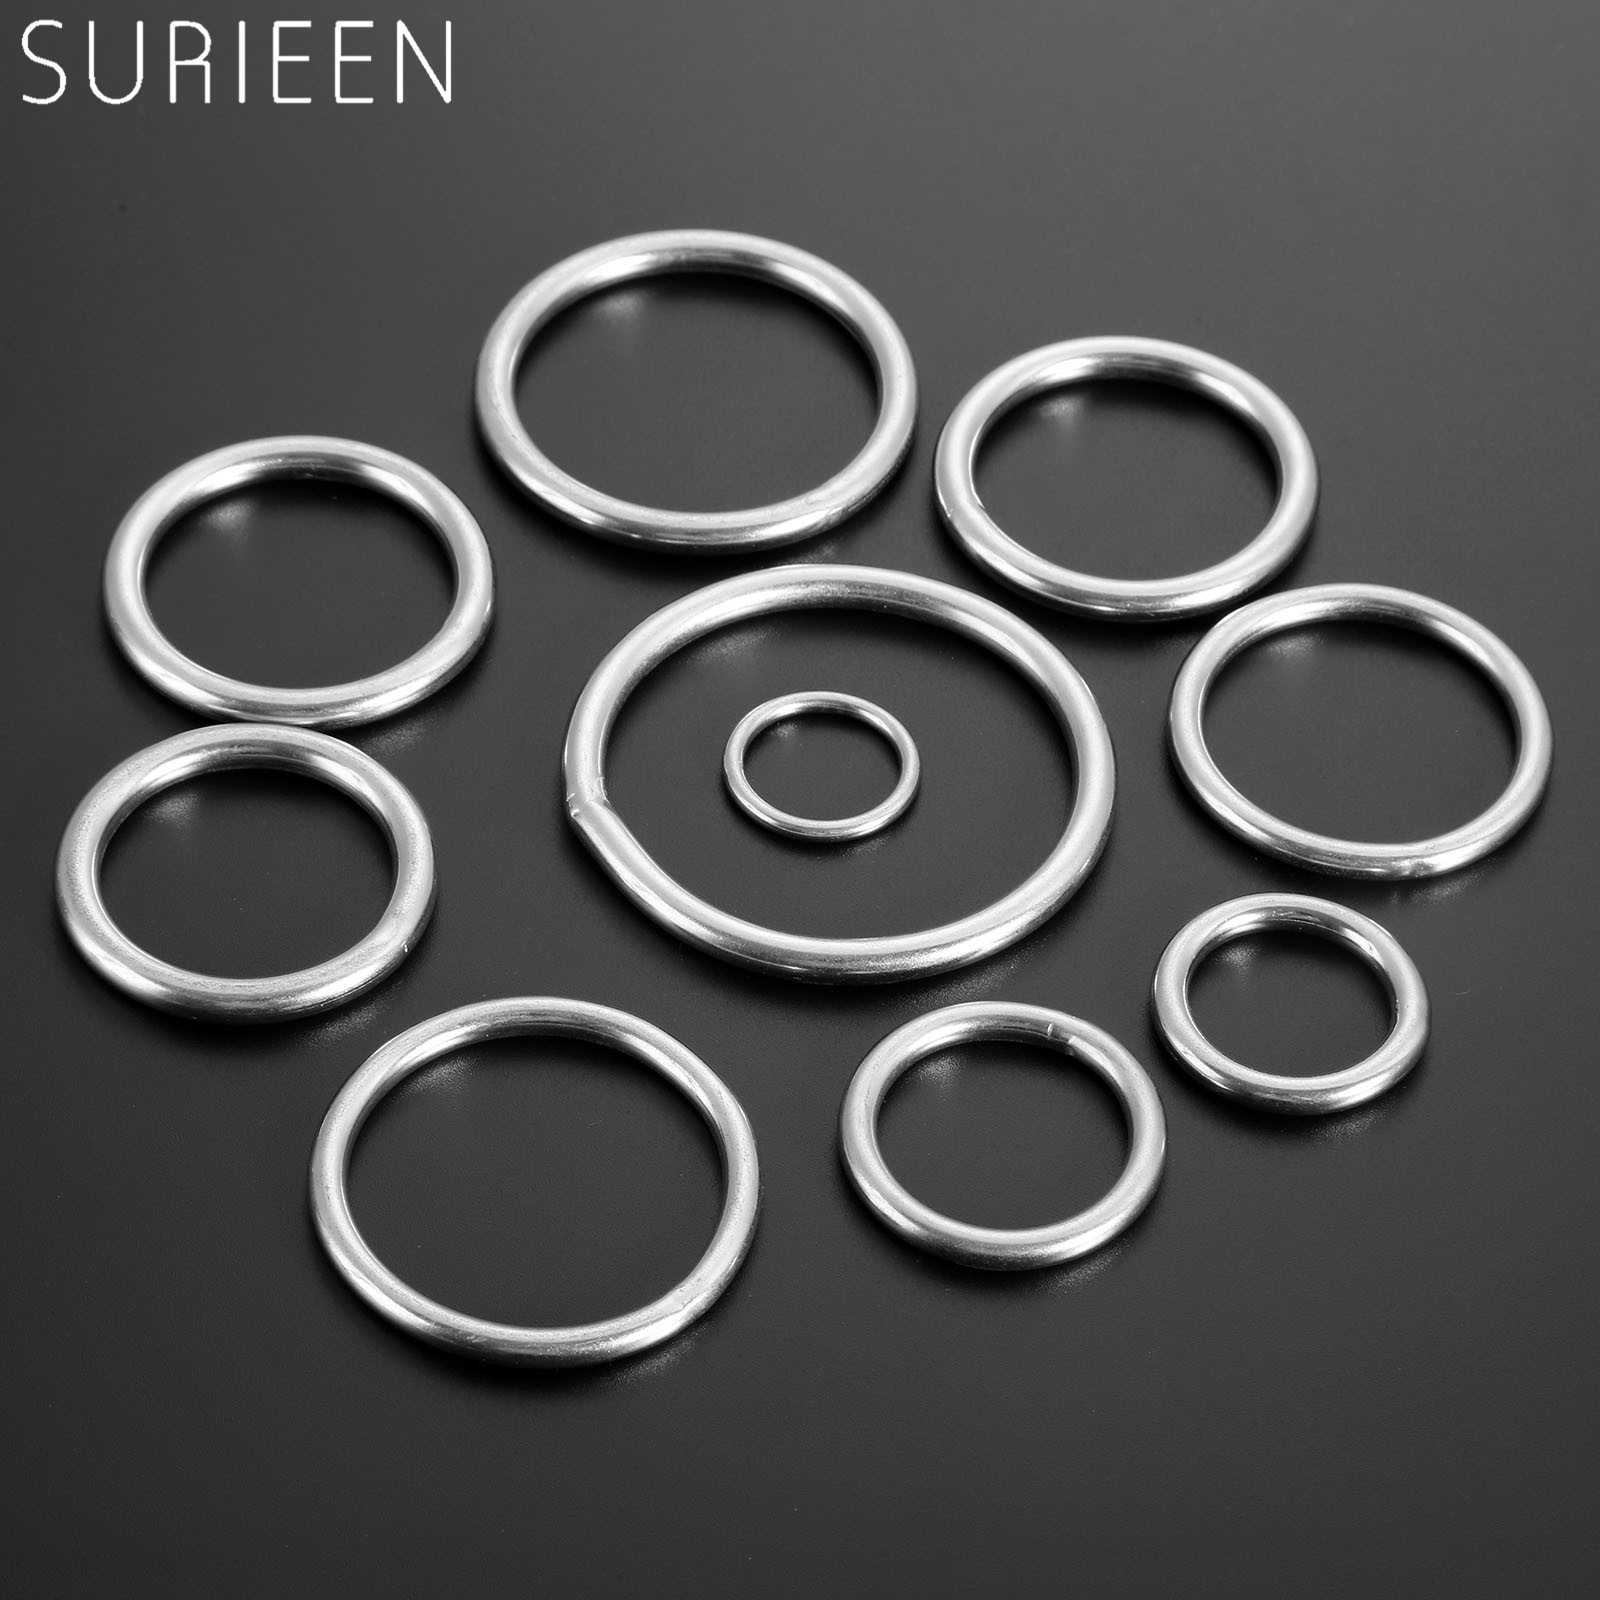 5pcs 20mm-60mm Smooth Welded Precision Polished 316 Stainless Steel Marine Boat Hardware Round O Rings Hammock Yoga Hanging Ring